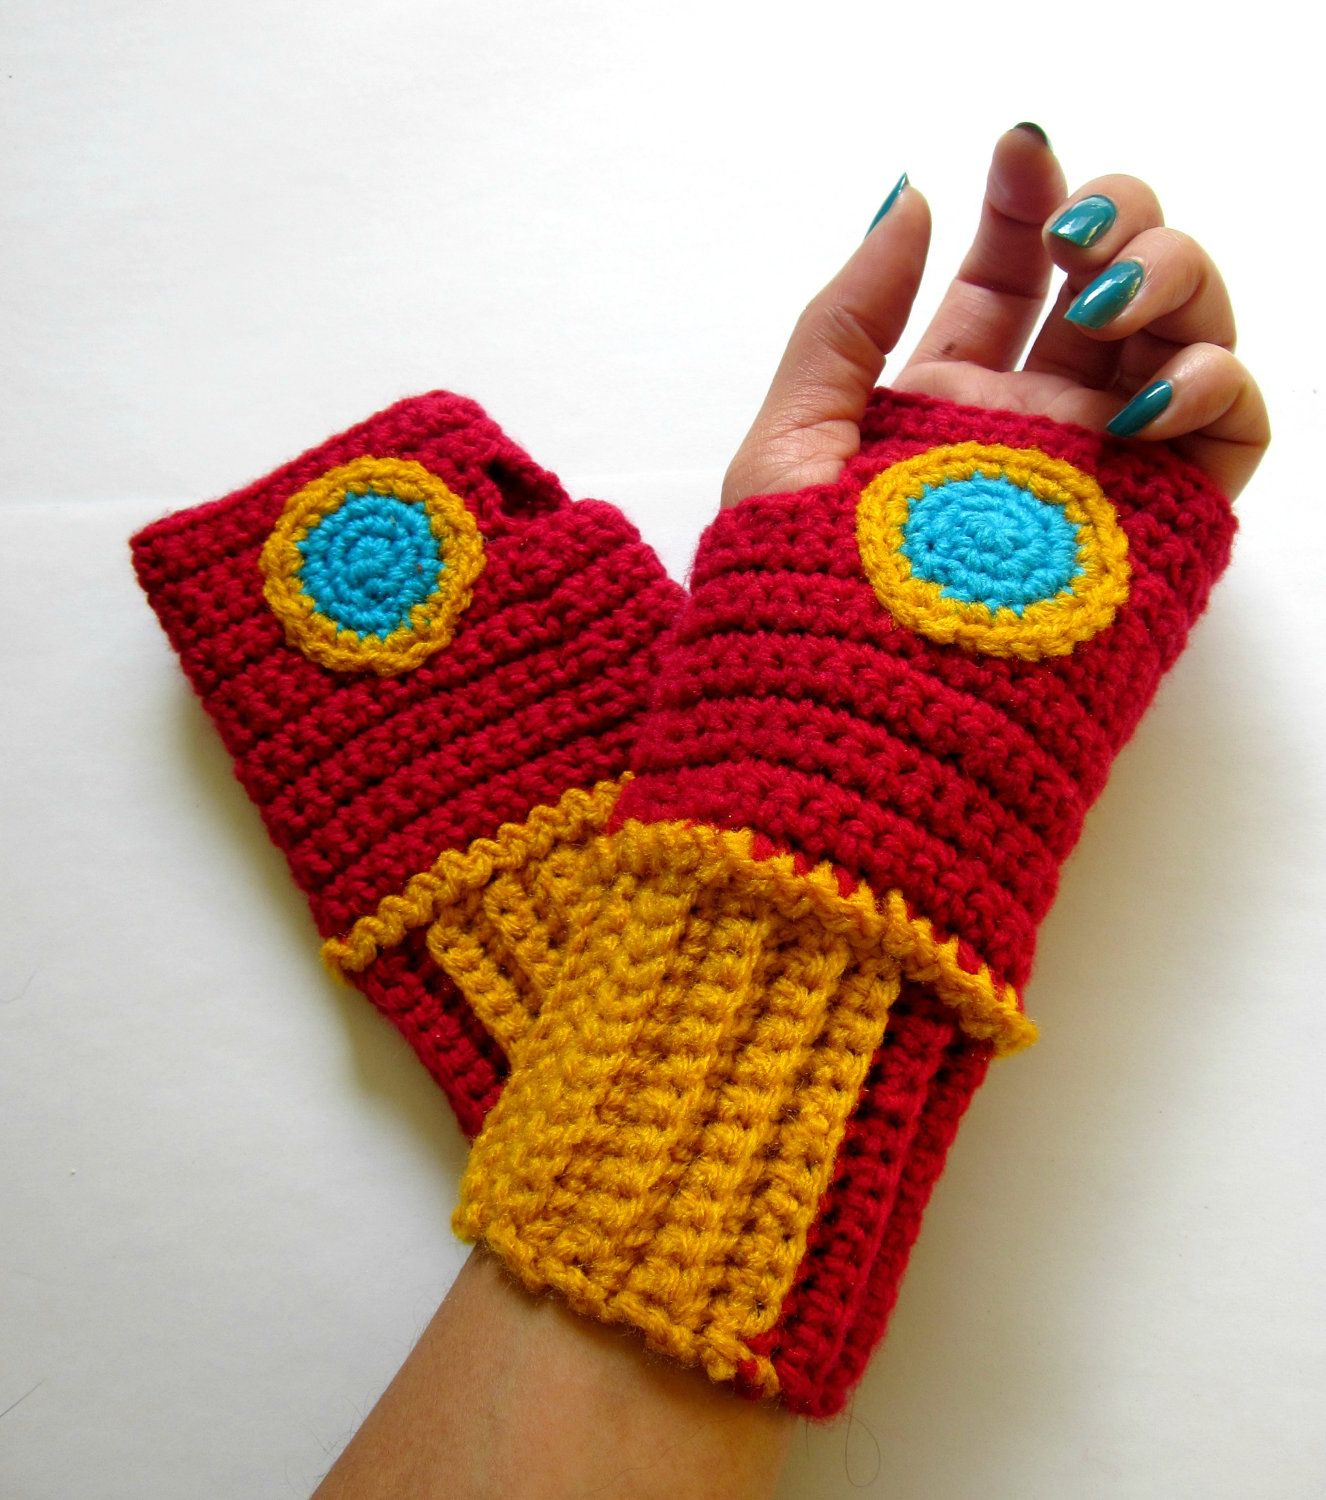 Iron Man Inspired Wristwarmers Honestly These Probably Belong In The When I M Married To Lex Luthor Category But They Re Crochet Fingerless Crochet Projects